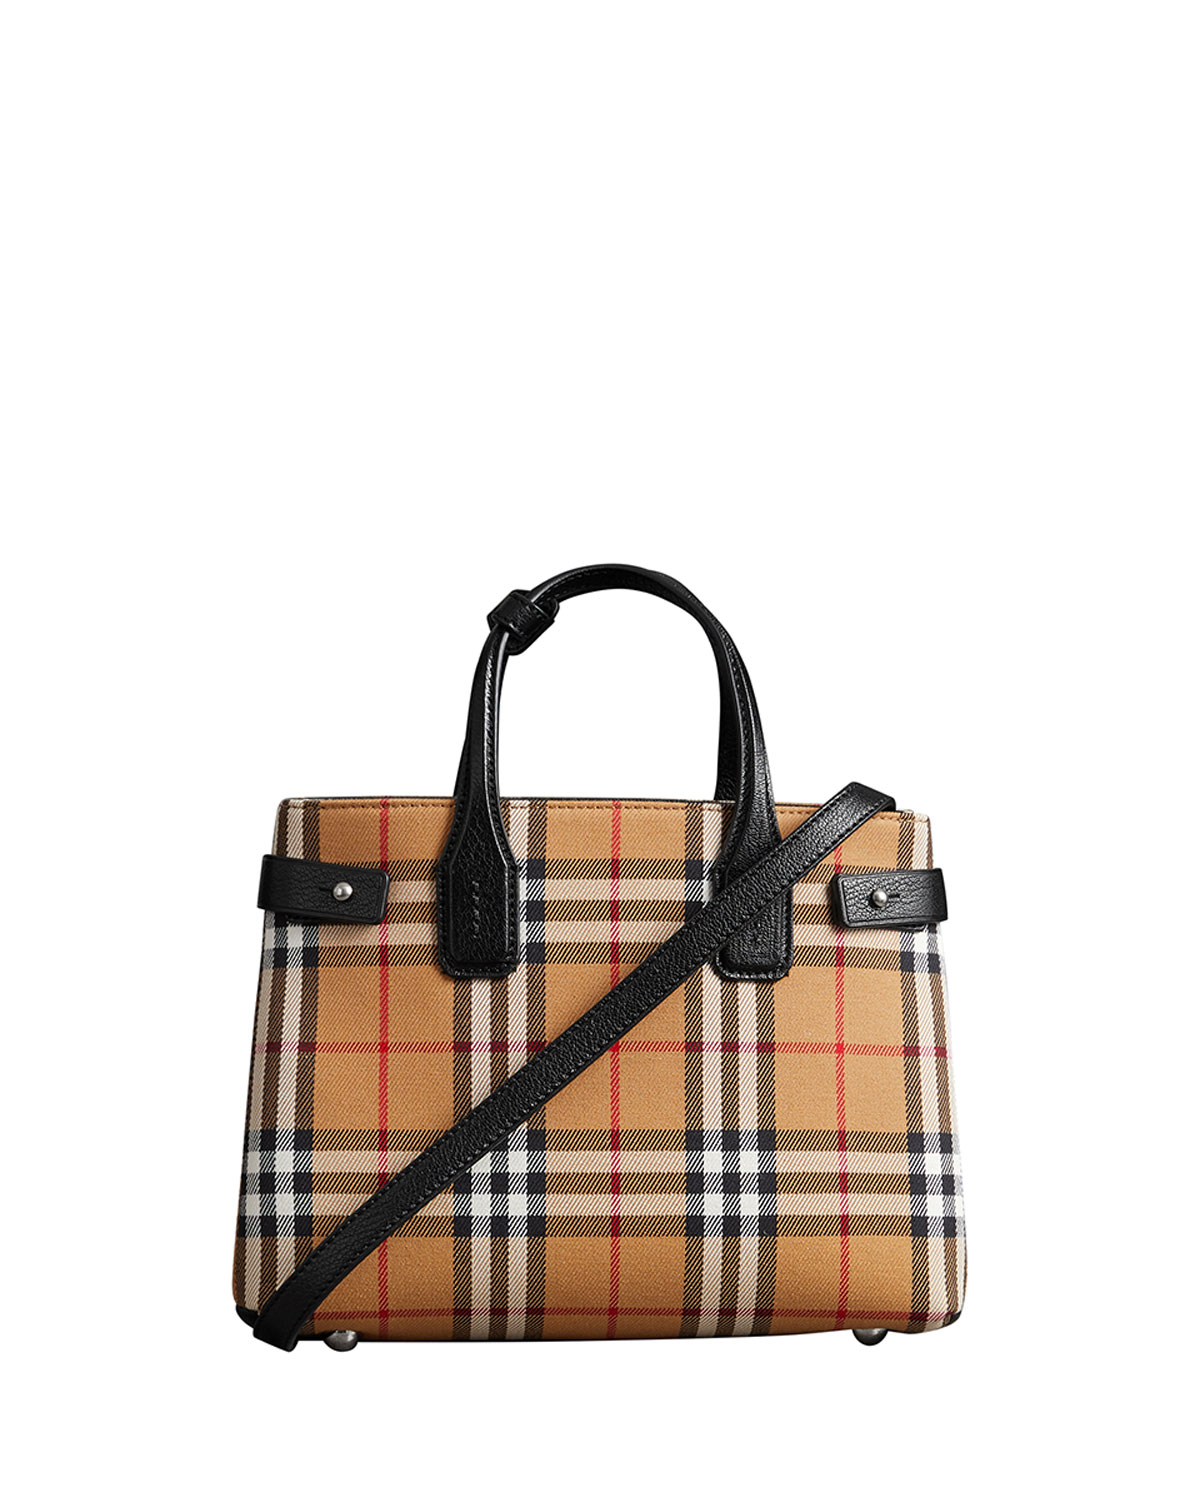 forefront of the times fashion design entire collection Banner Small Vintage Check Tote Bag